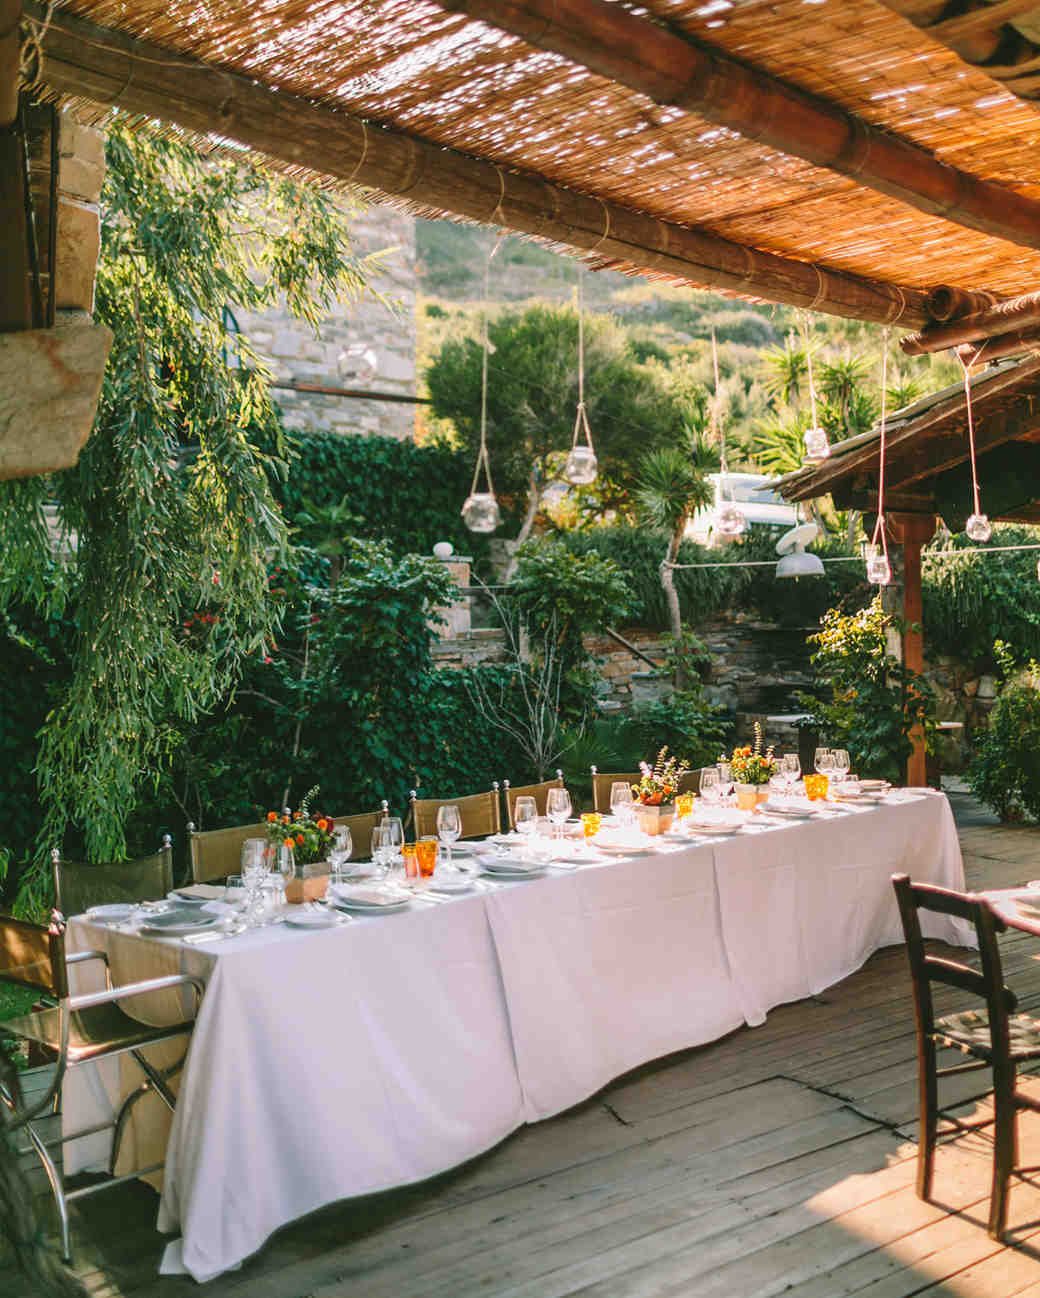 Athens Wedding Venues | The Most Amazing Airbnb Wedding Venues Martha Stewart Weddings